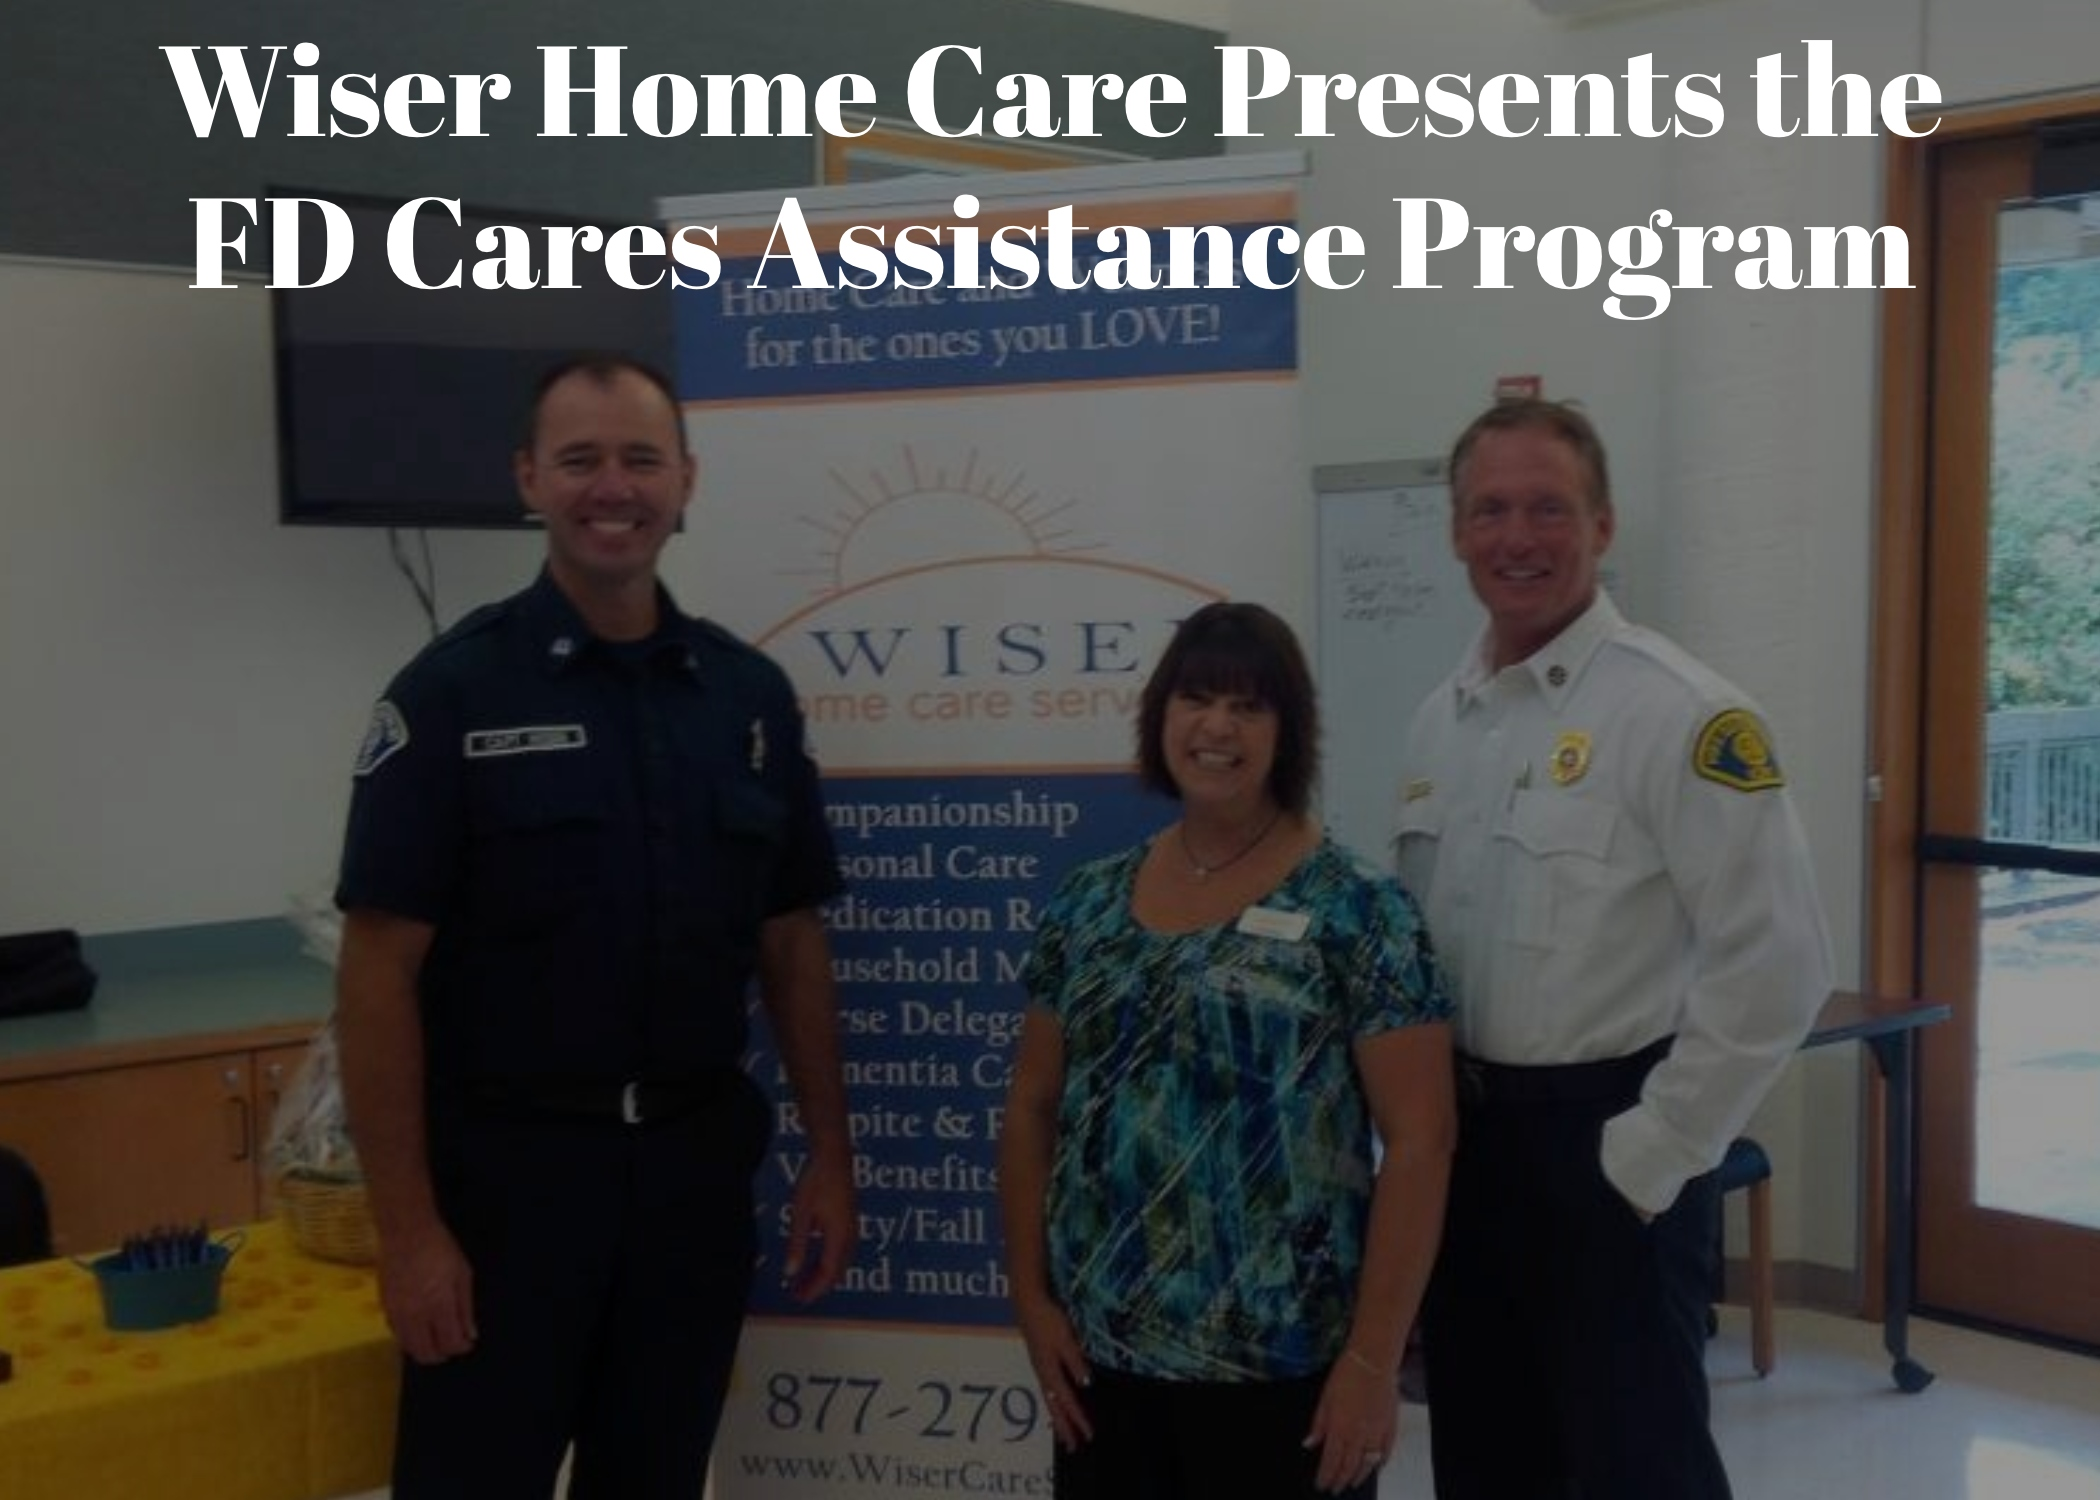 Wiser Home Care Presents the FD Cares Assistance Program